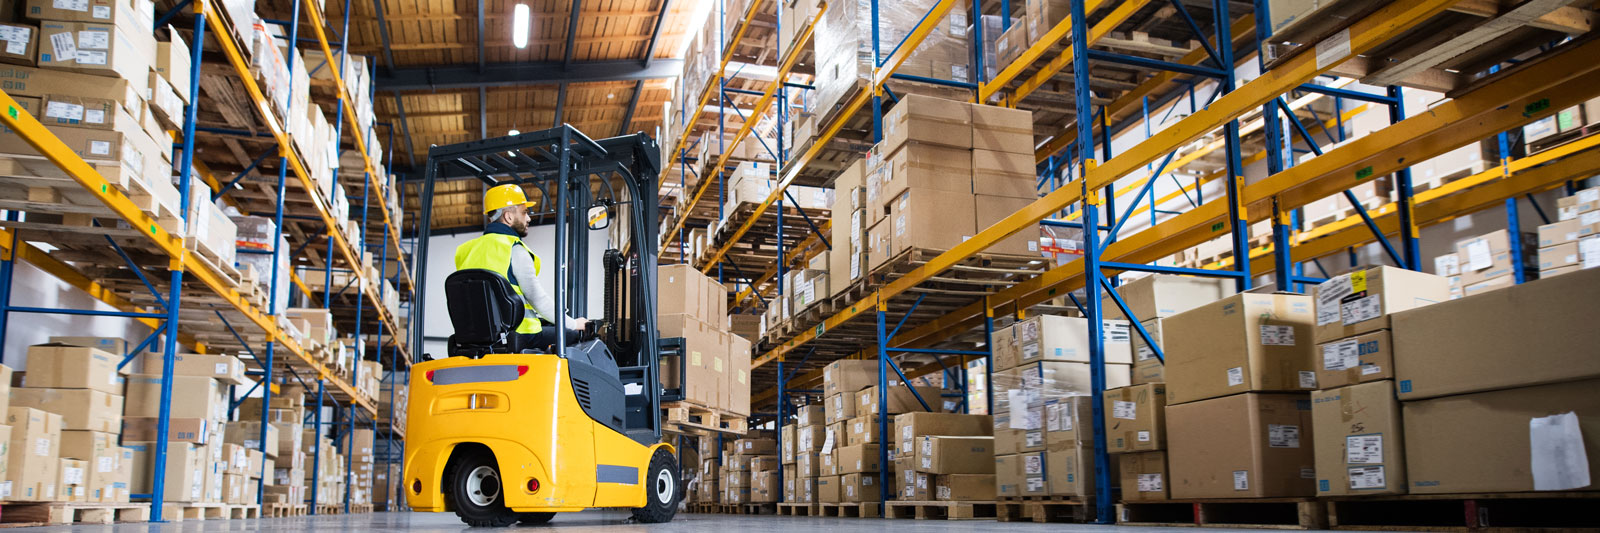 a forklift and operative in a warehouse aisle